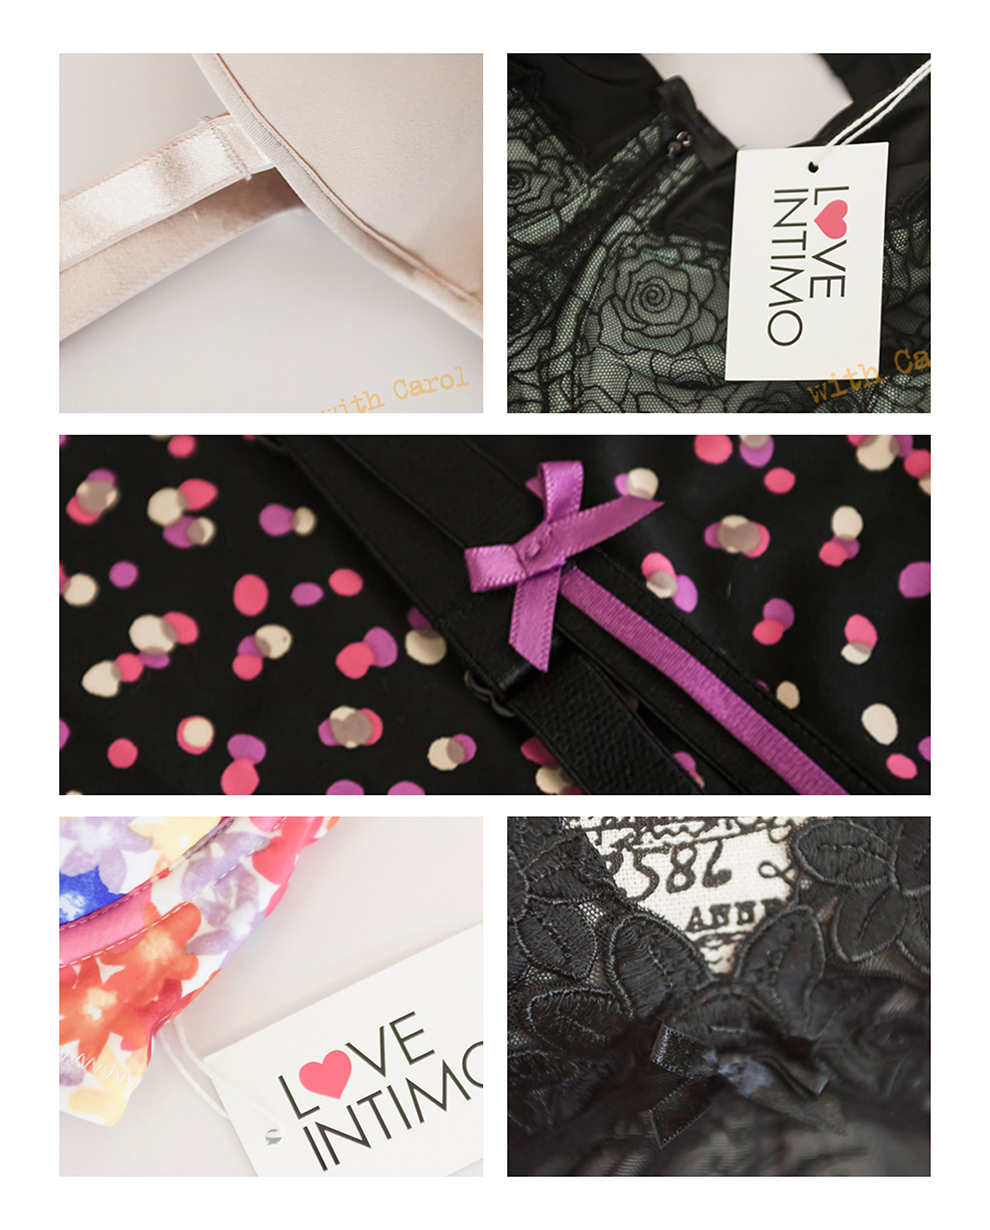 Details of the beautiful items in Taya's range.  I LOVE that she came to me with a whole range of products, so that I could see how committed she was to helping me find just the right bra.